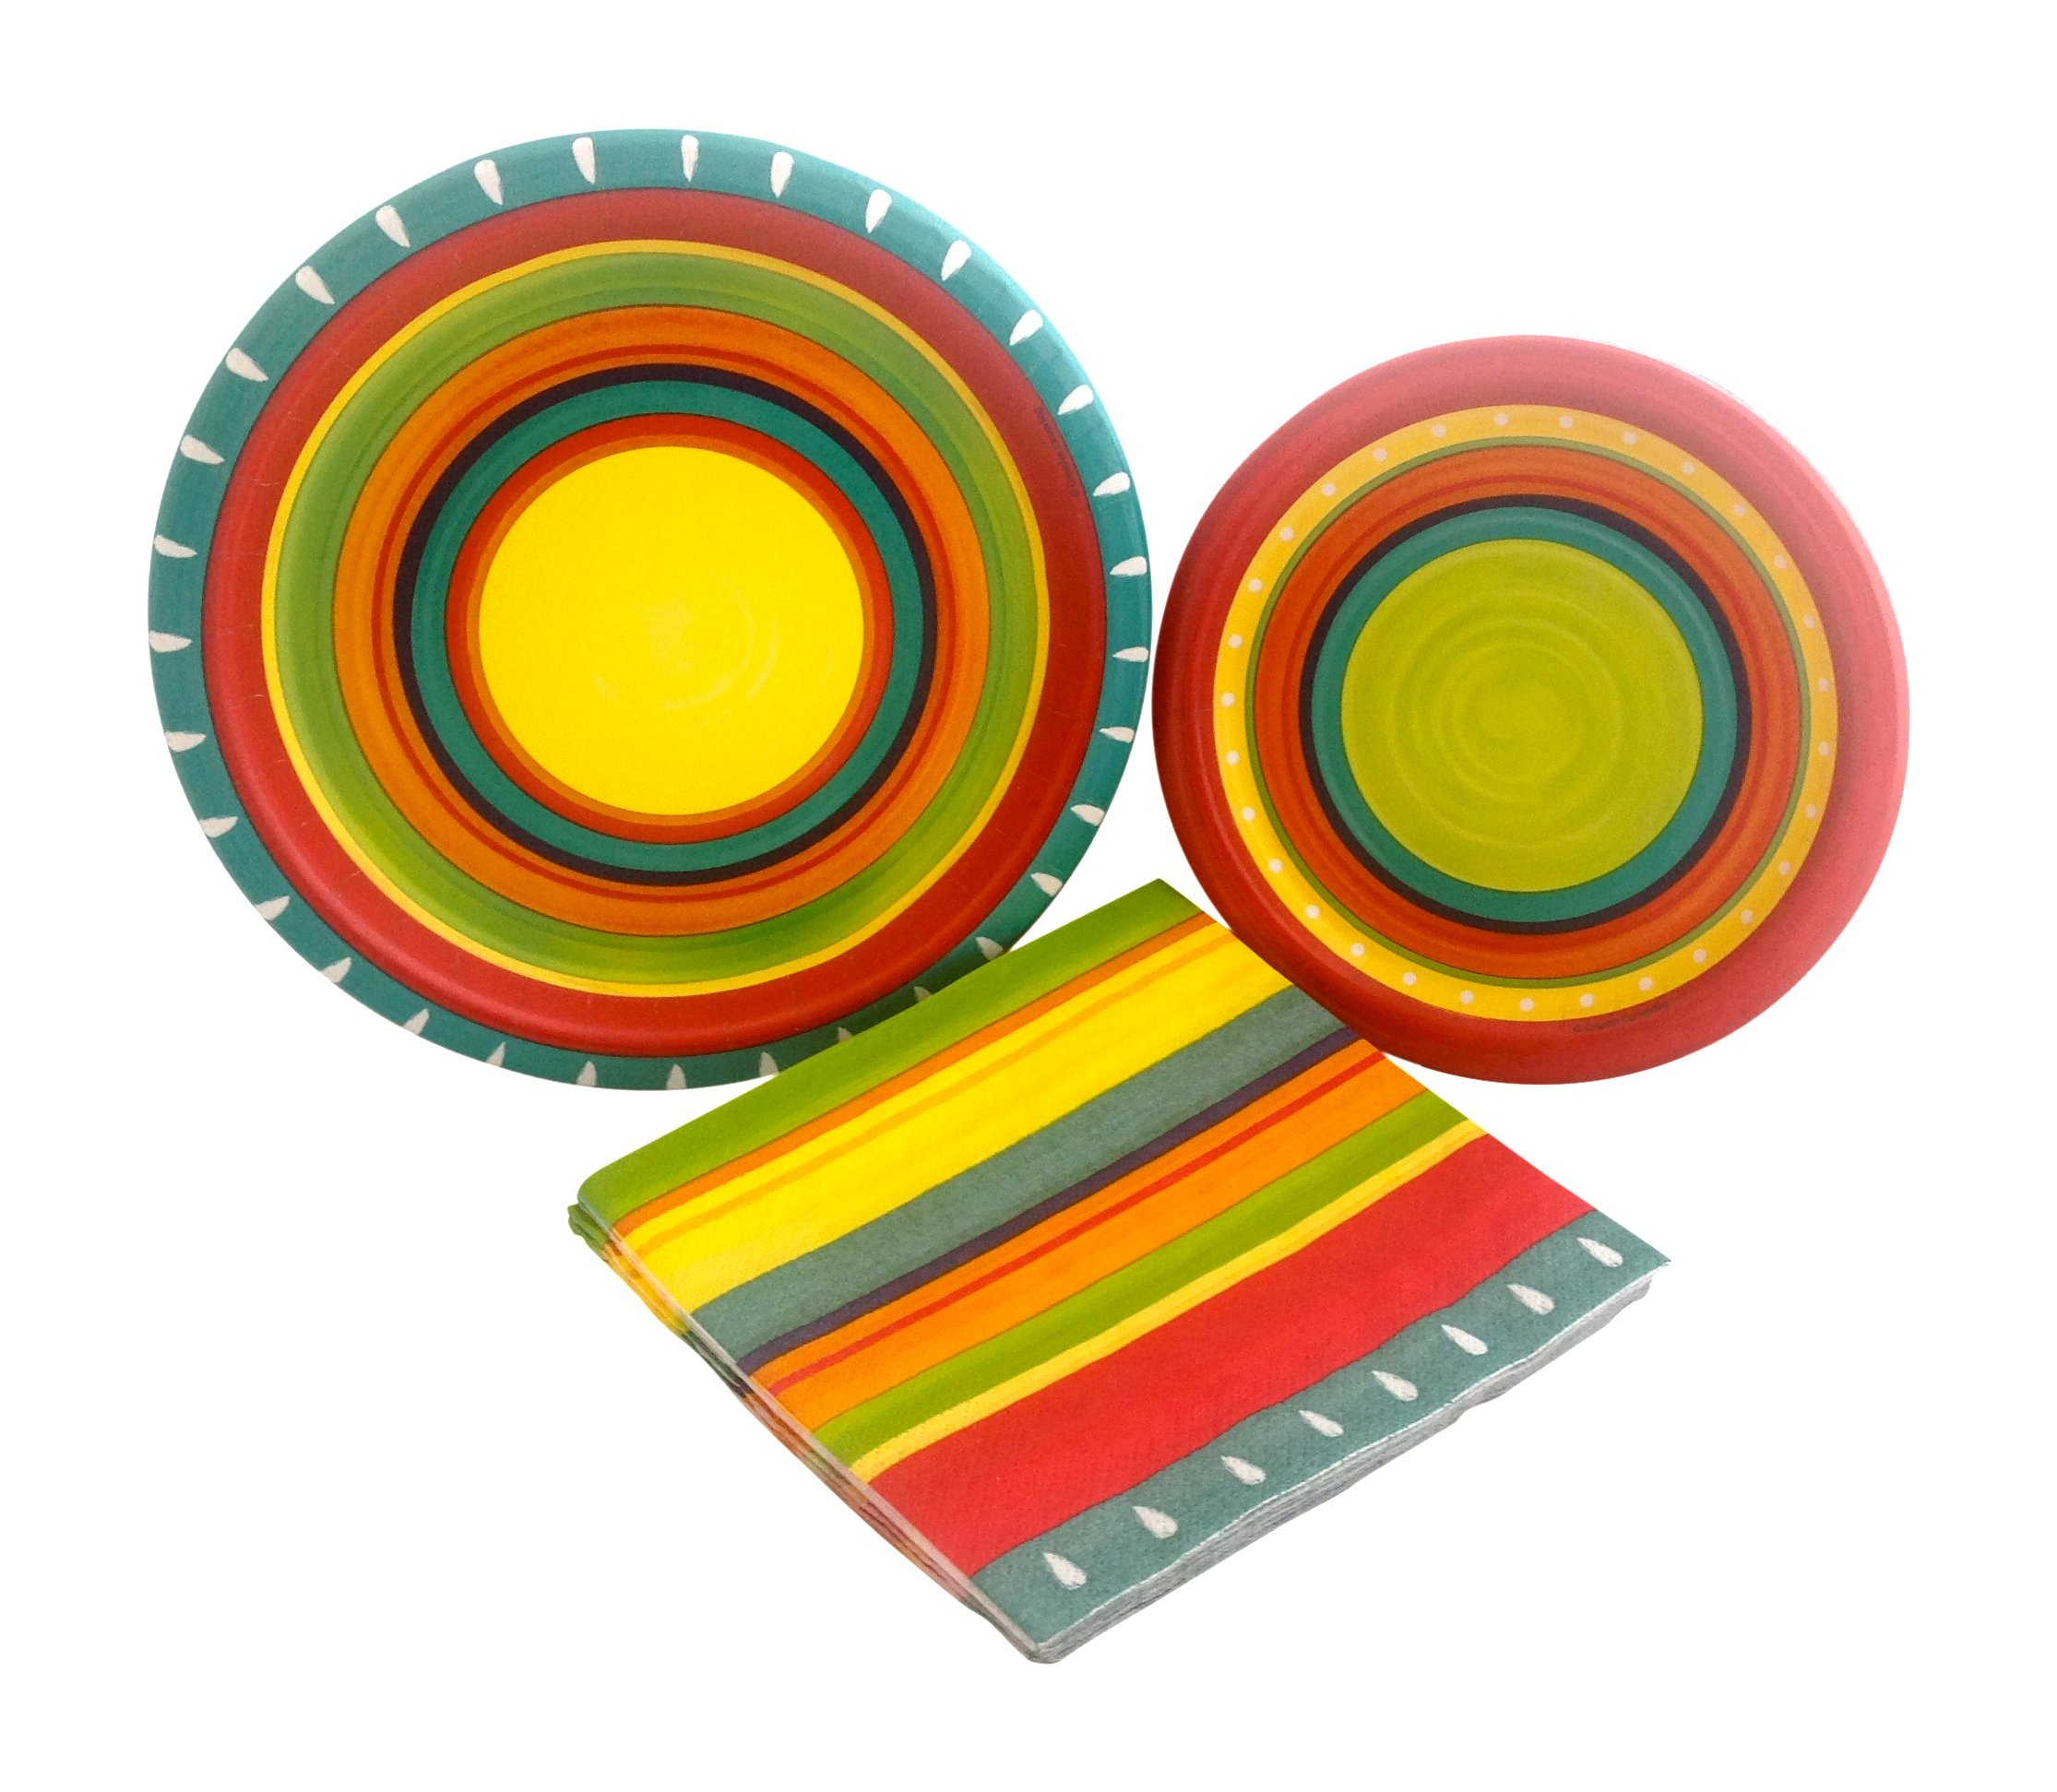 Summer Stoneware Fiesta Party Supply Bundle with Paper Plates and Napkins for 8 Guests